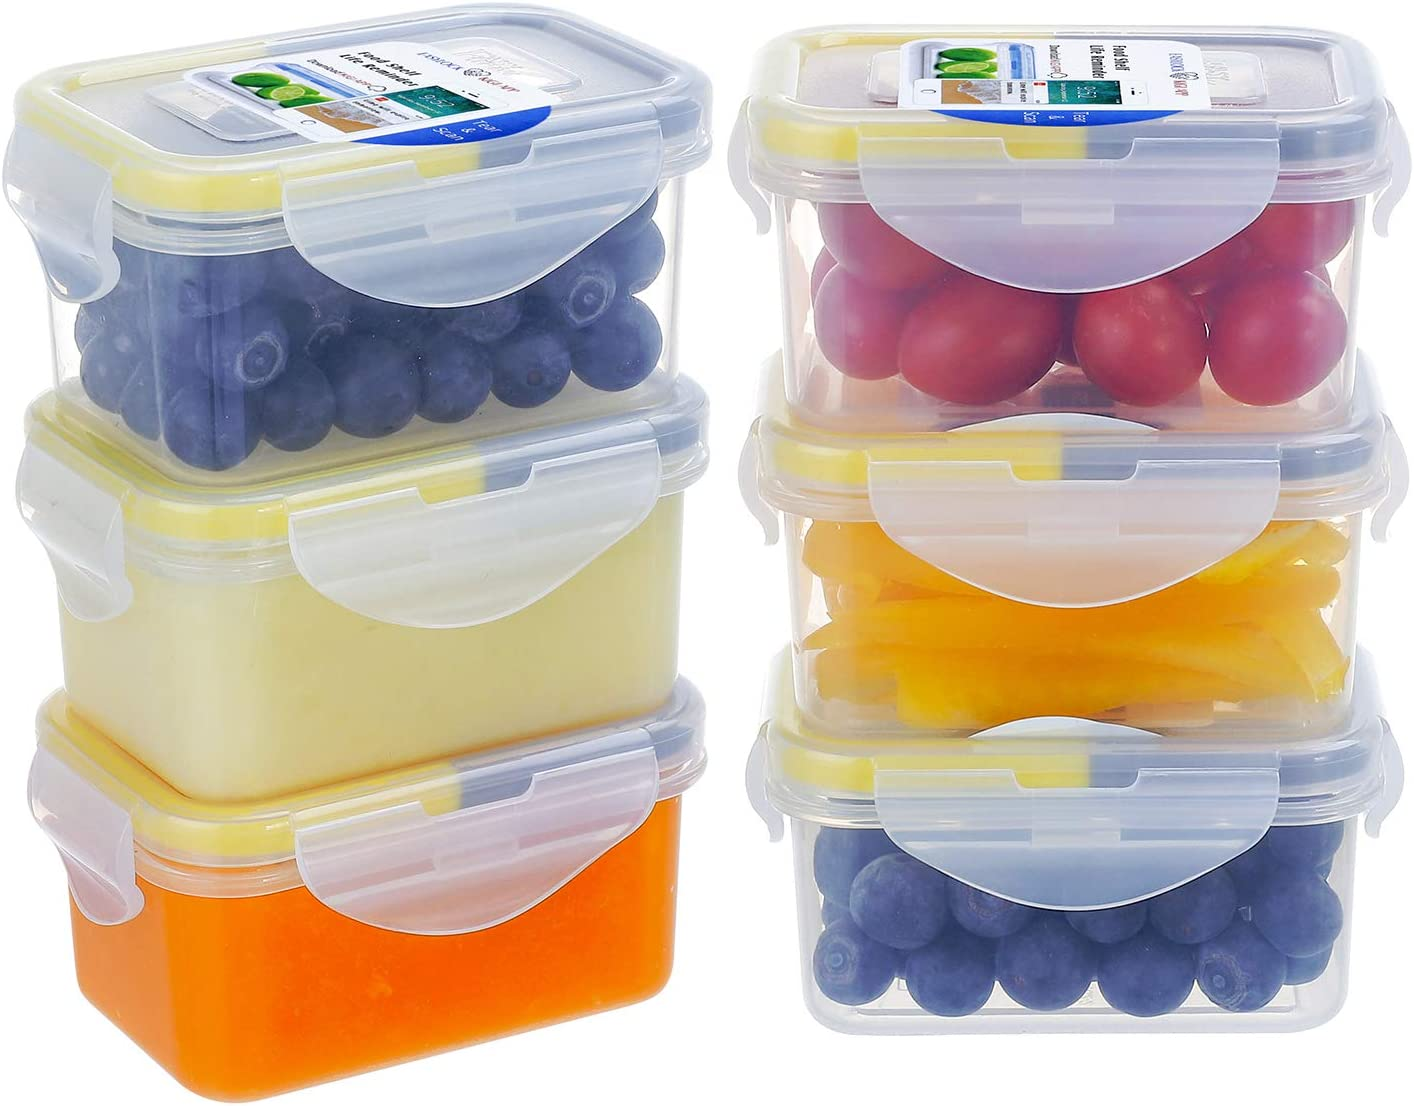 [6 Pack]6.1oz Small Plastic Food Storage Containers,EASYLOCK Leakproof Food Containers with Lids,Airtight Mini Meal Prep,BPA Free - Microwave, Freezer and Dishwasher Safe